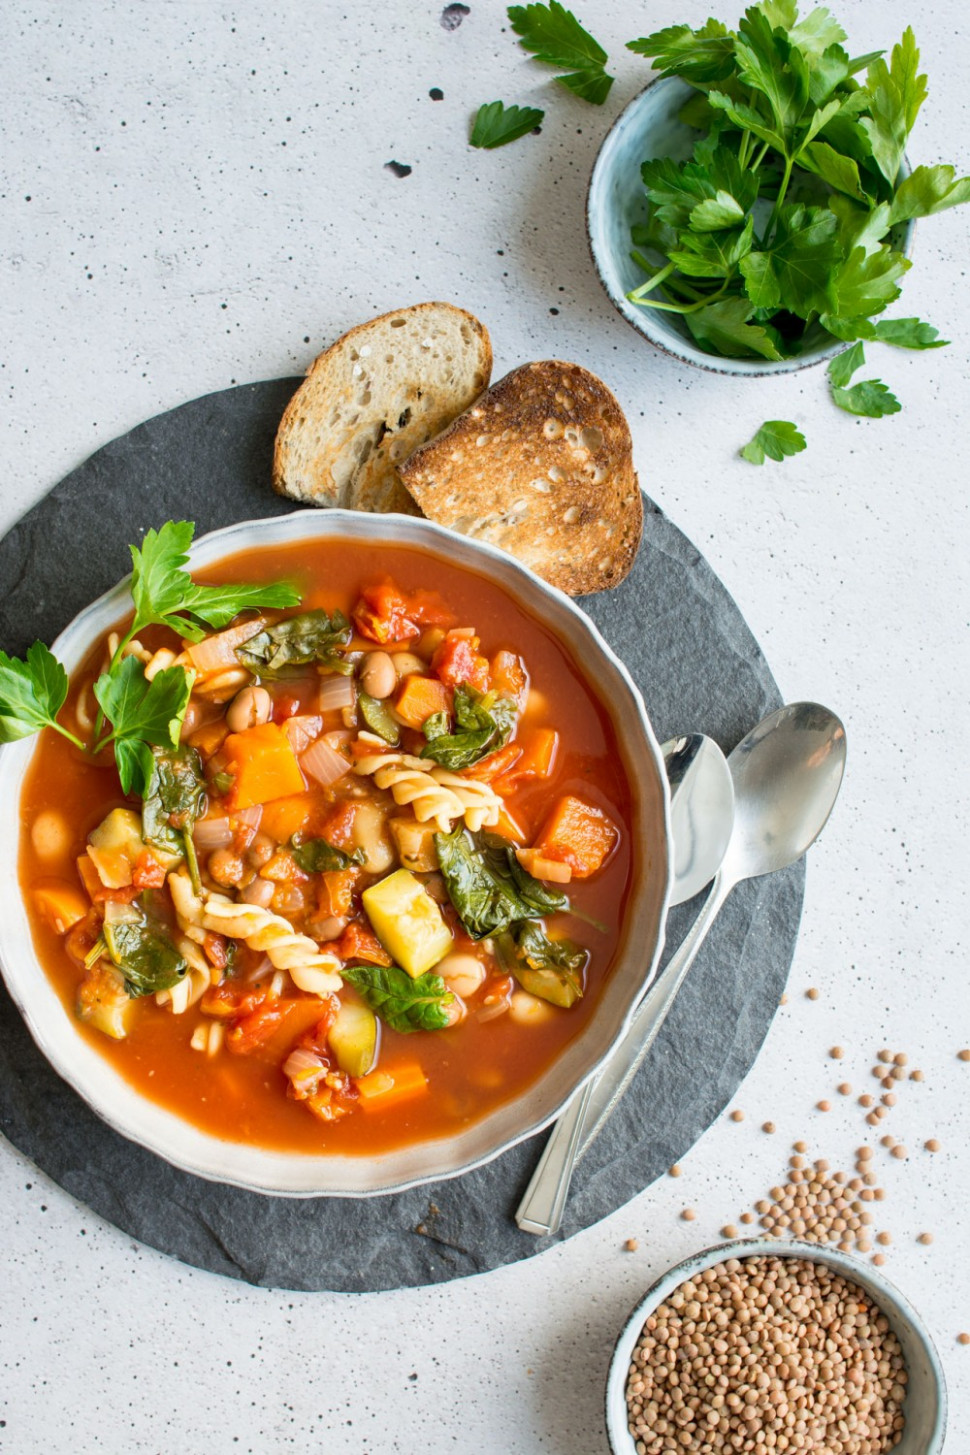 15 Delicious Minestrone Soup Recipes You Need To Try - Winter Soup Recipes Vegetarian